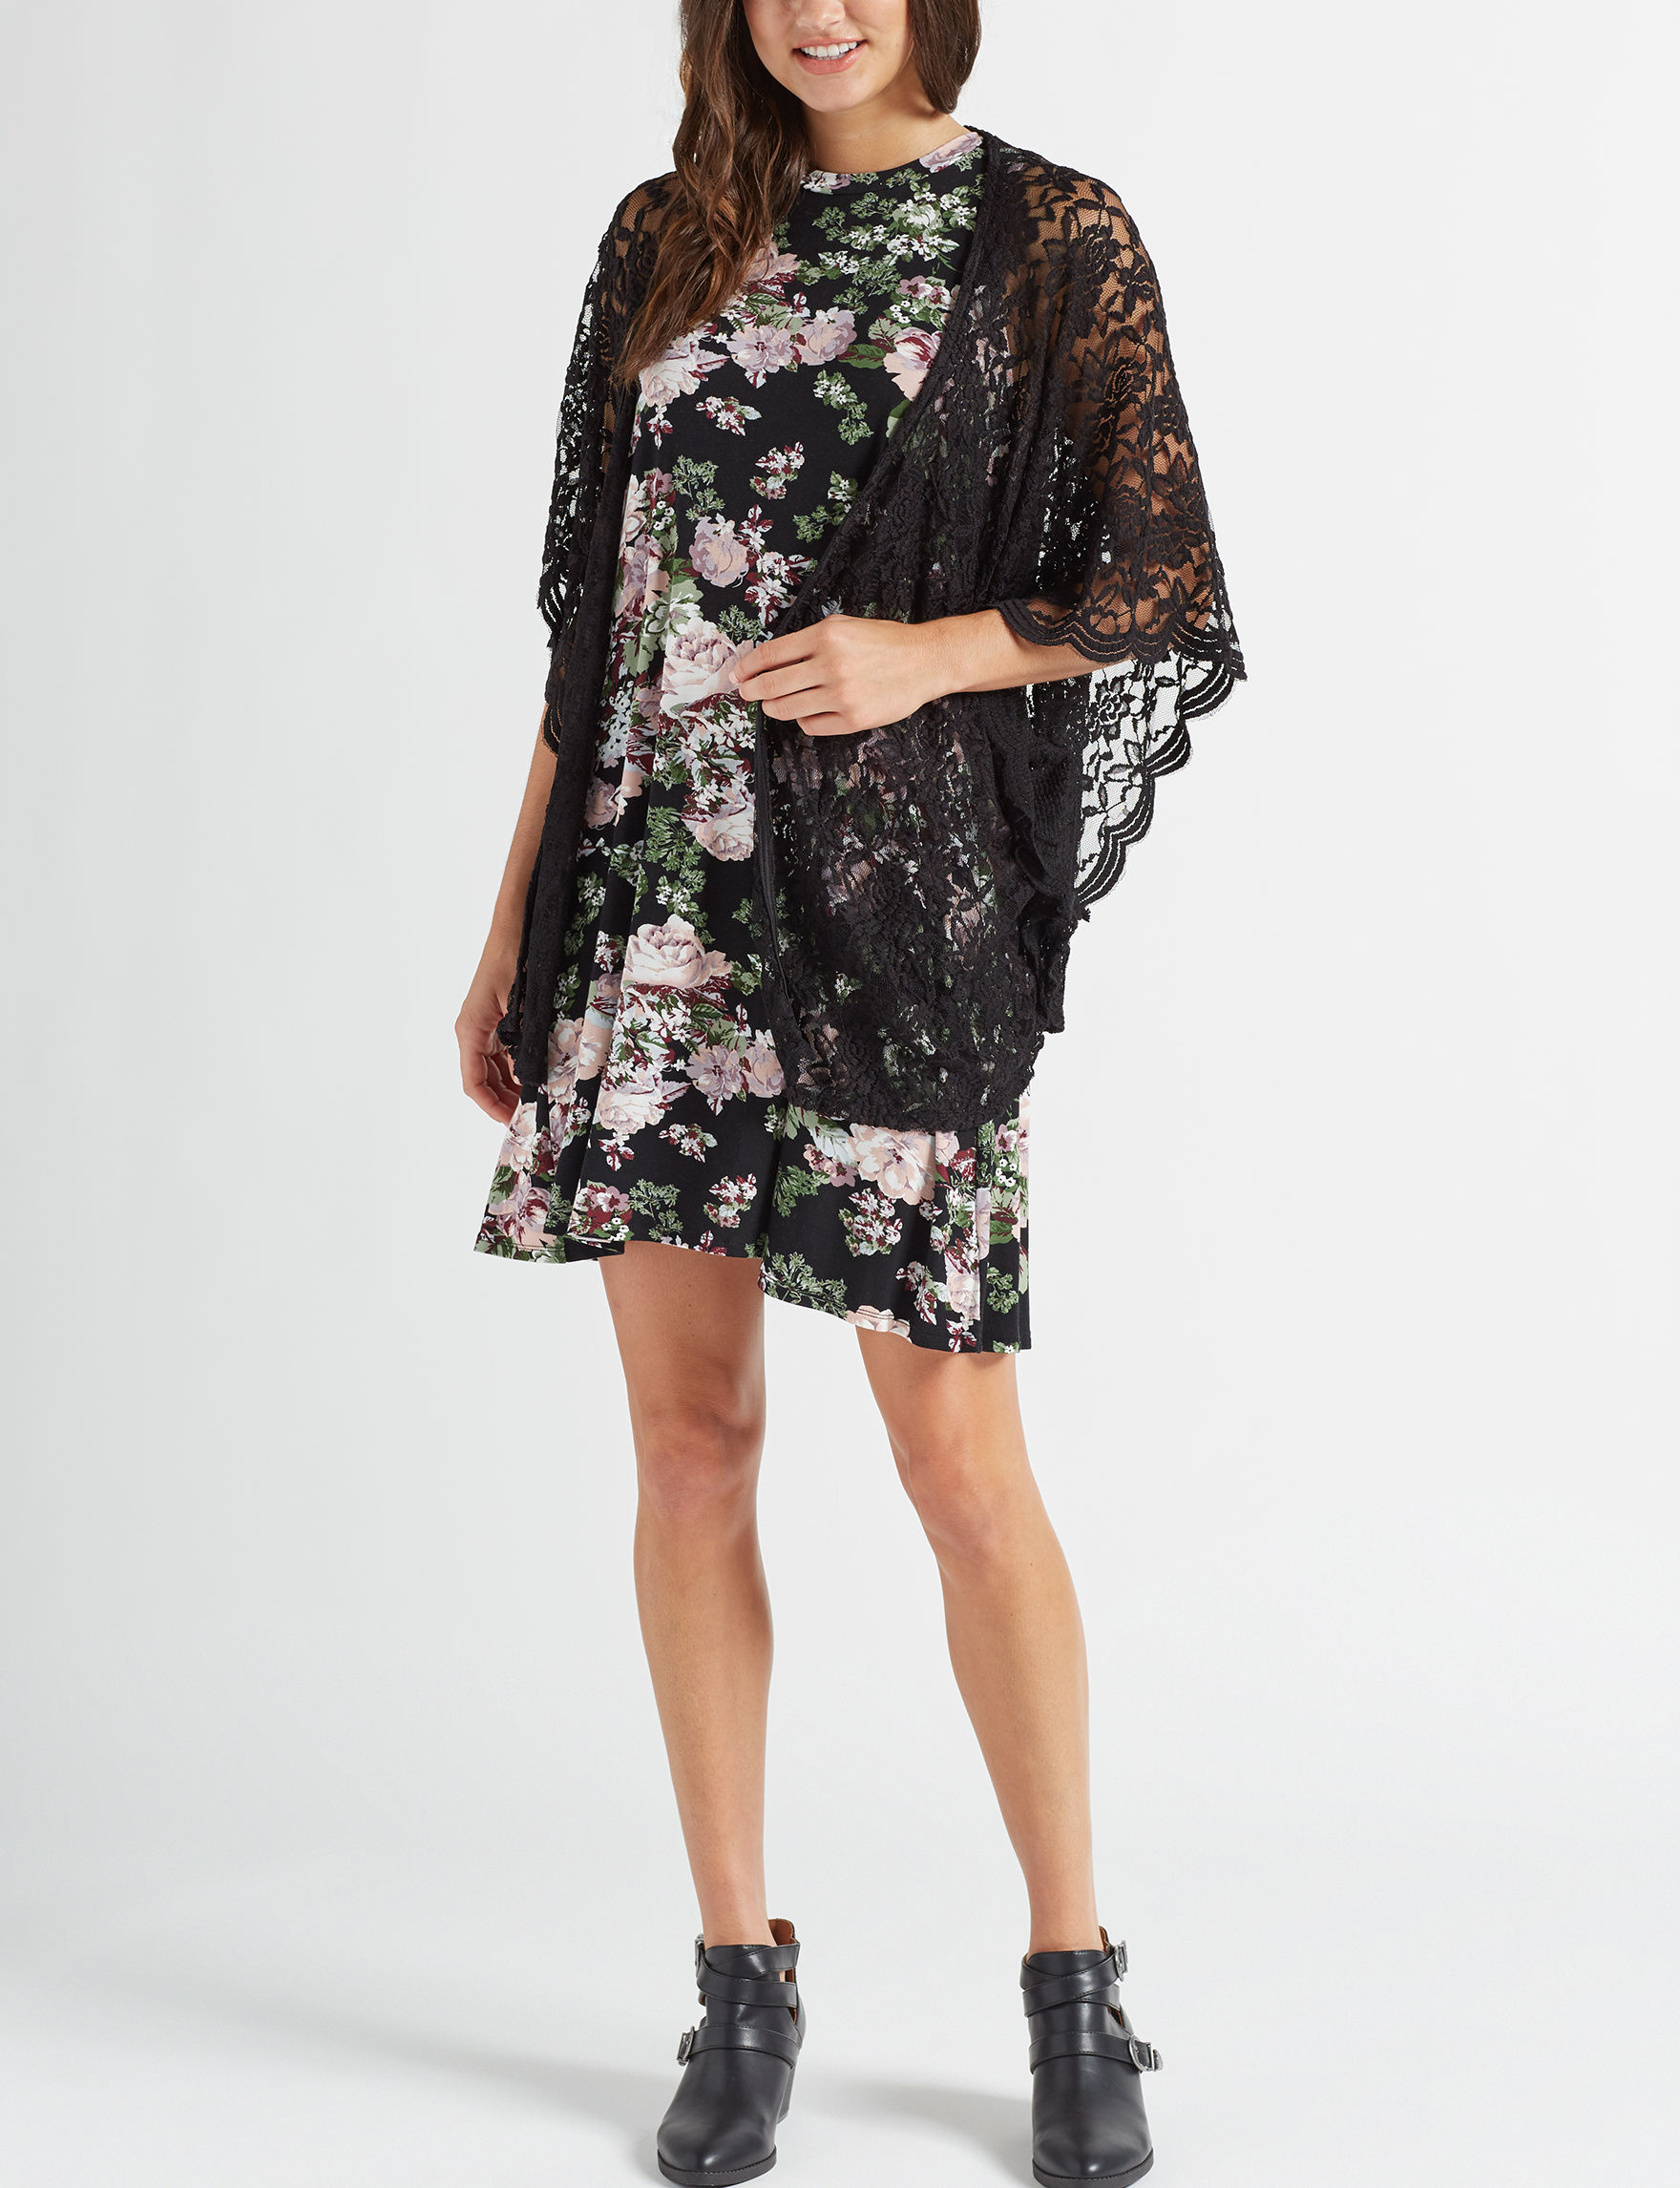 Wishful Park Black Floral Everyday & Casual